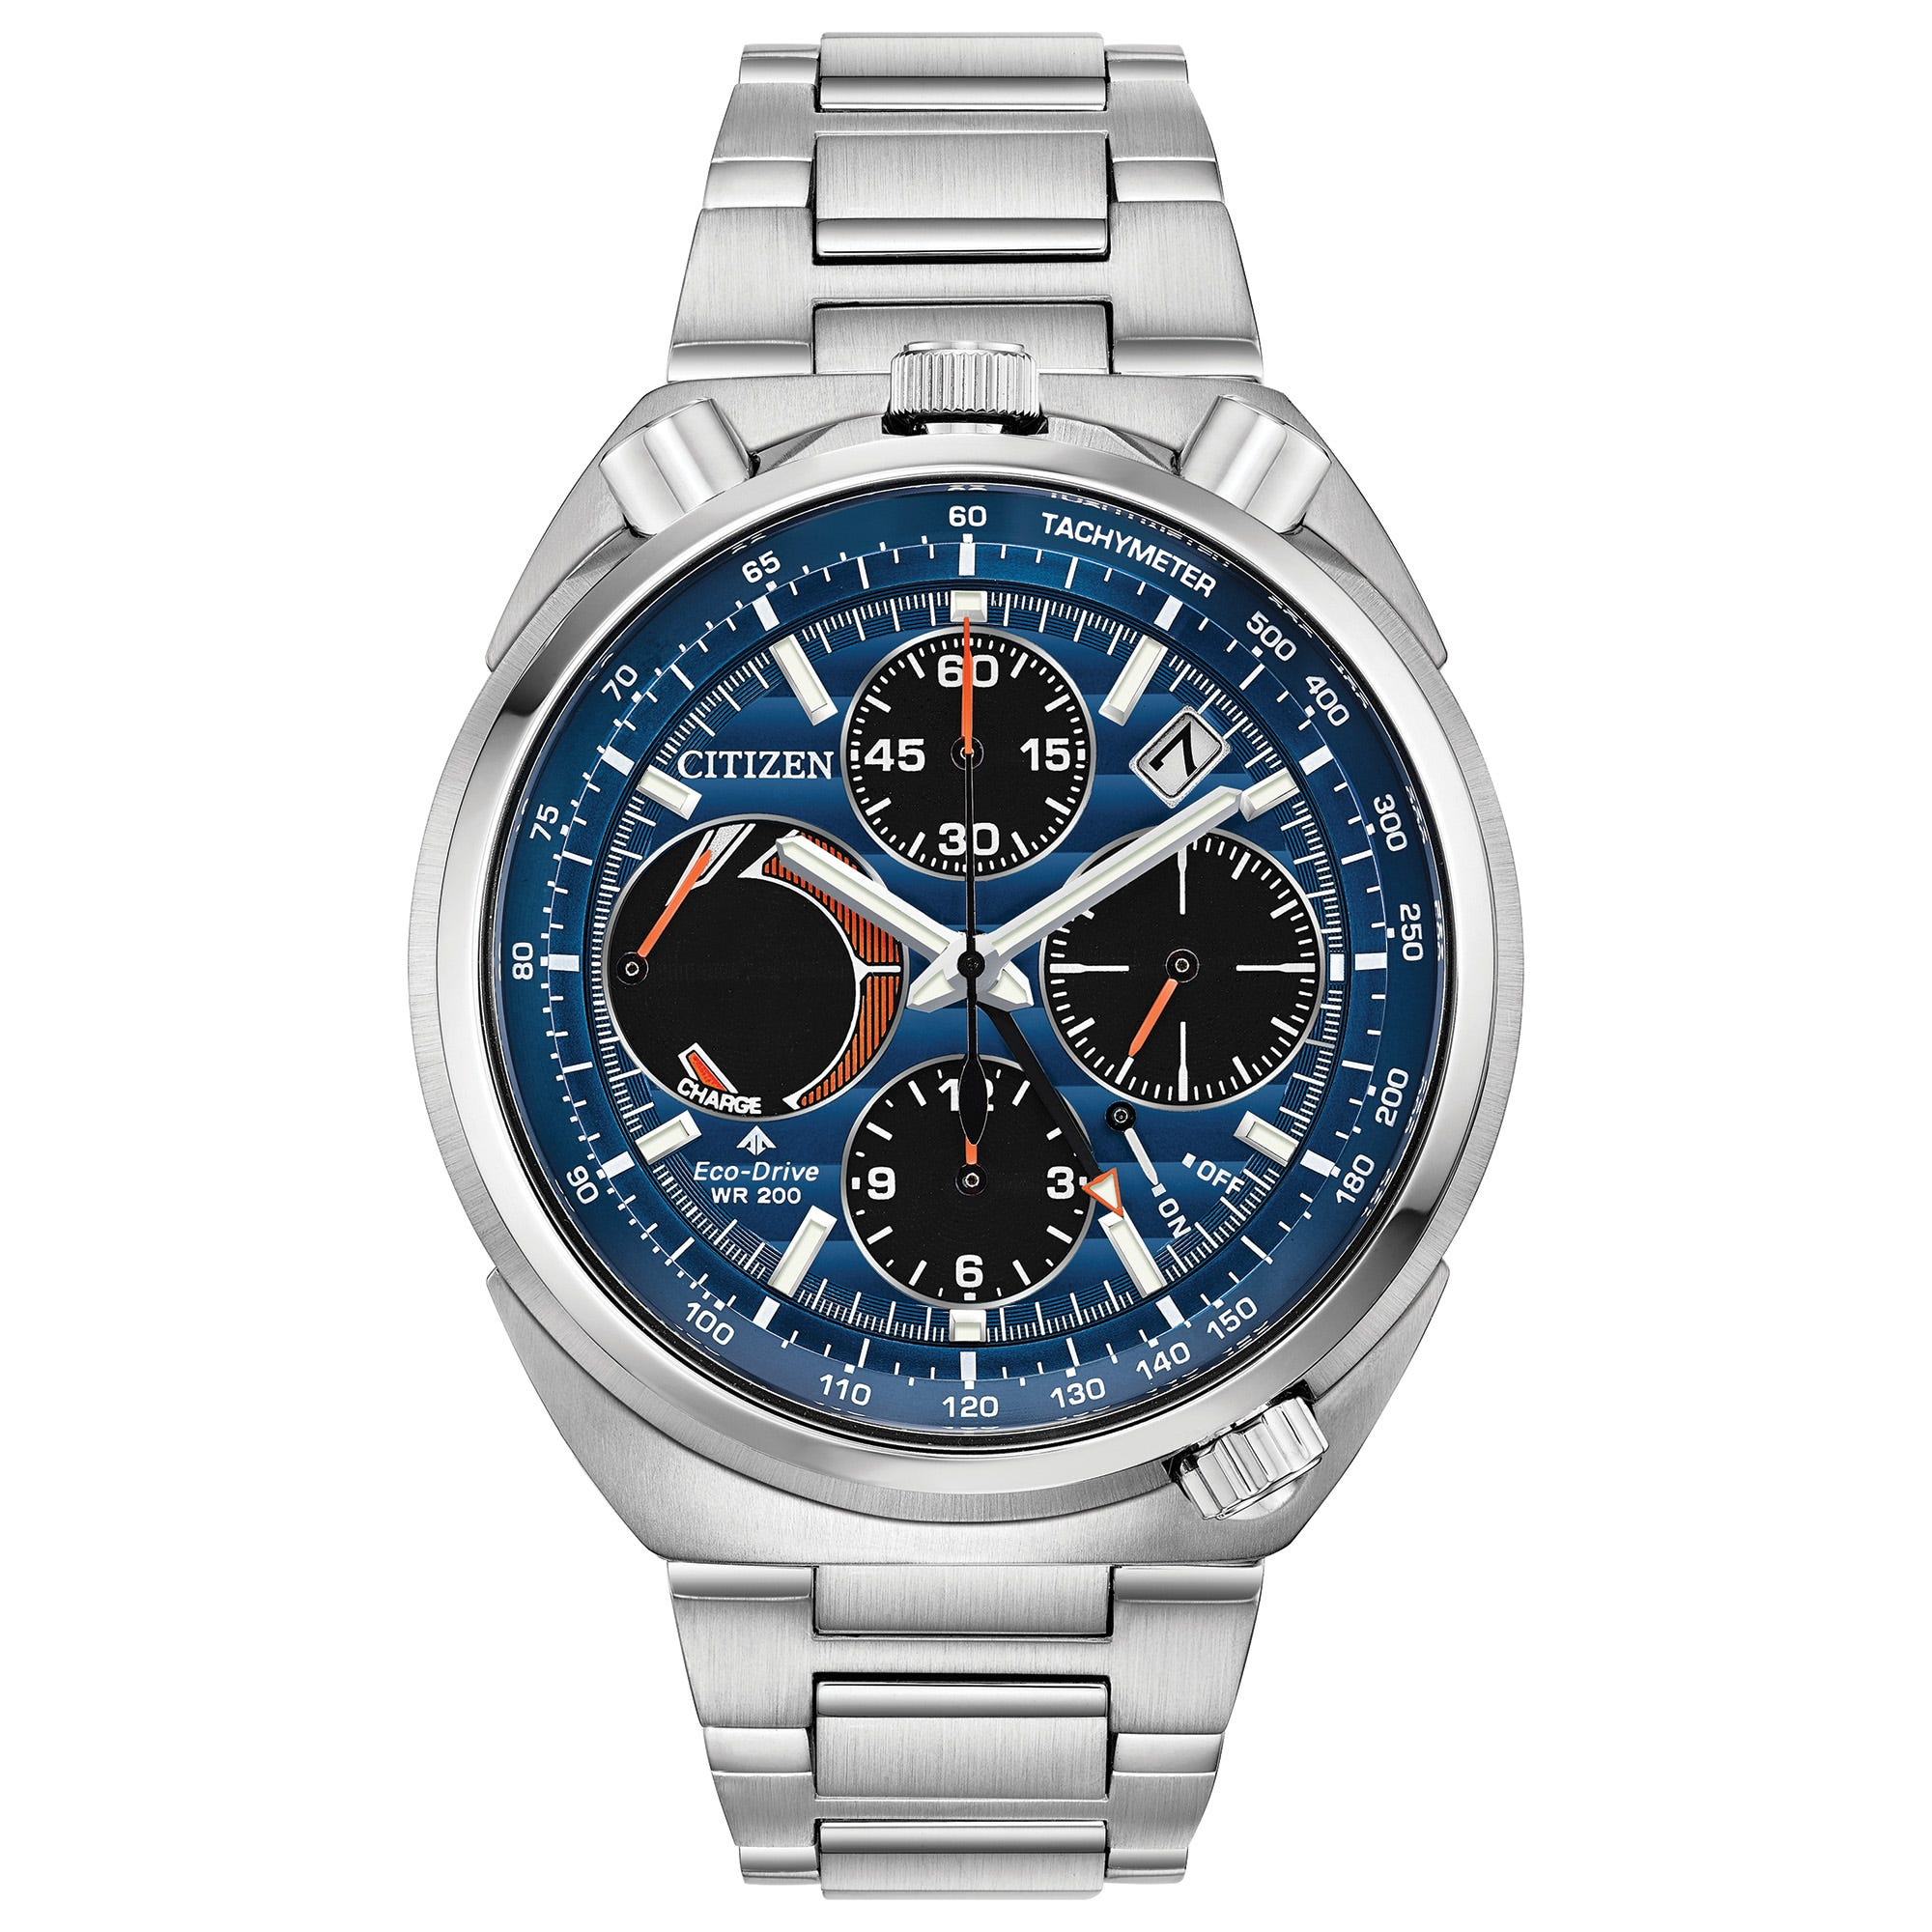 Citizen Men's Promaster Tsuno Chronograph Watch AV0070-57L